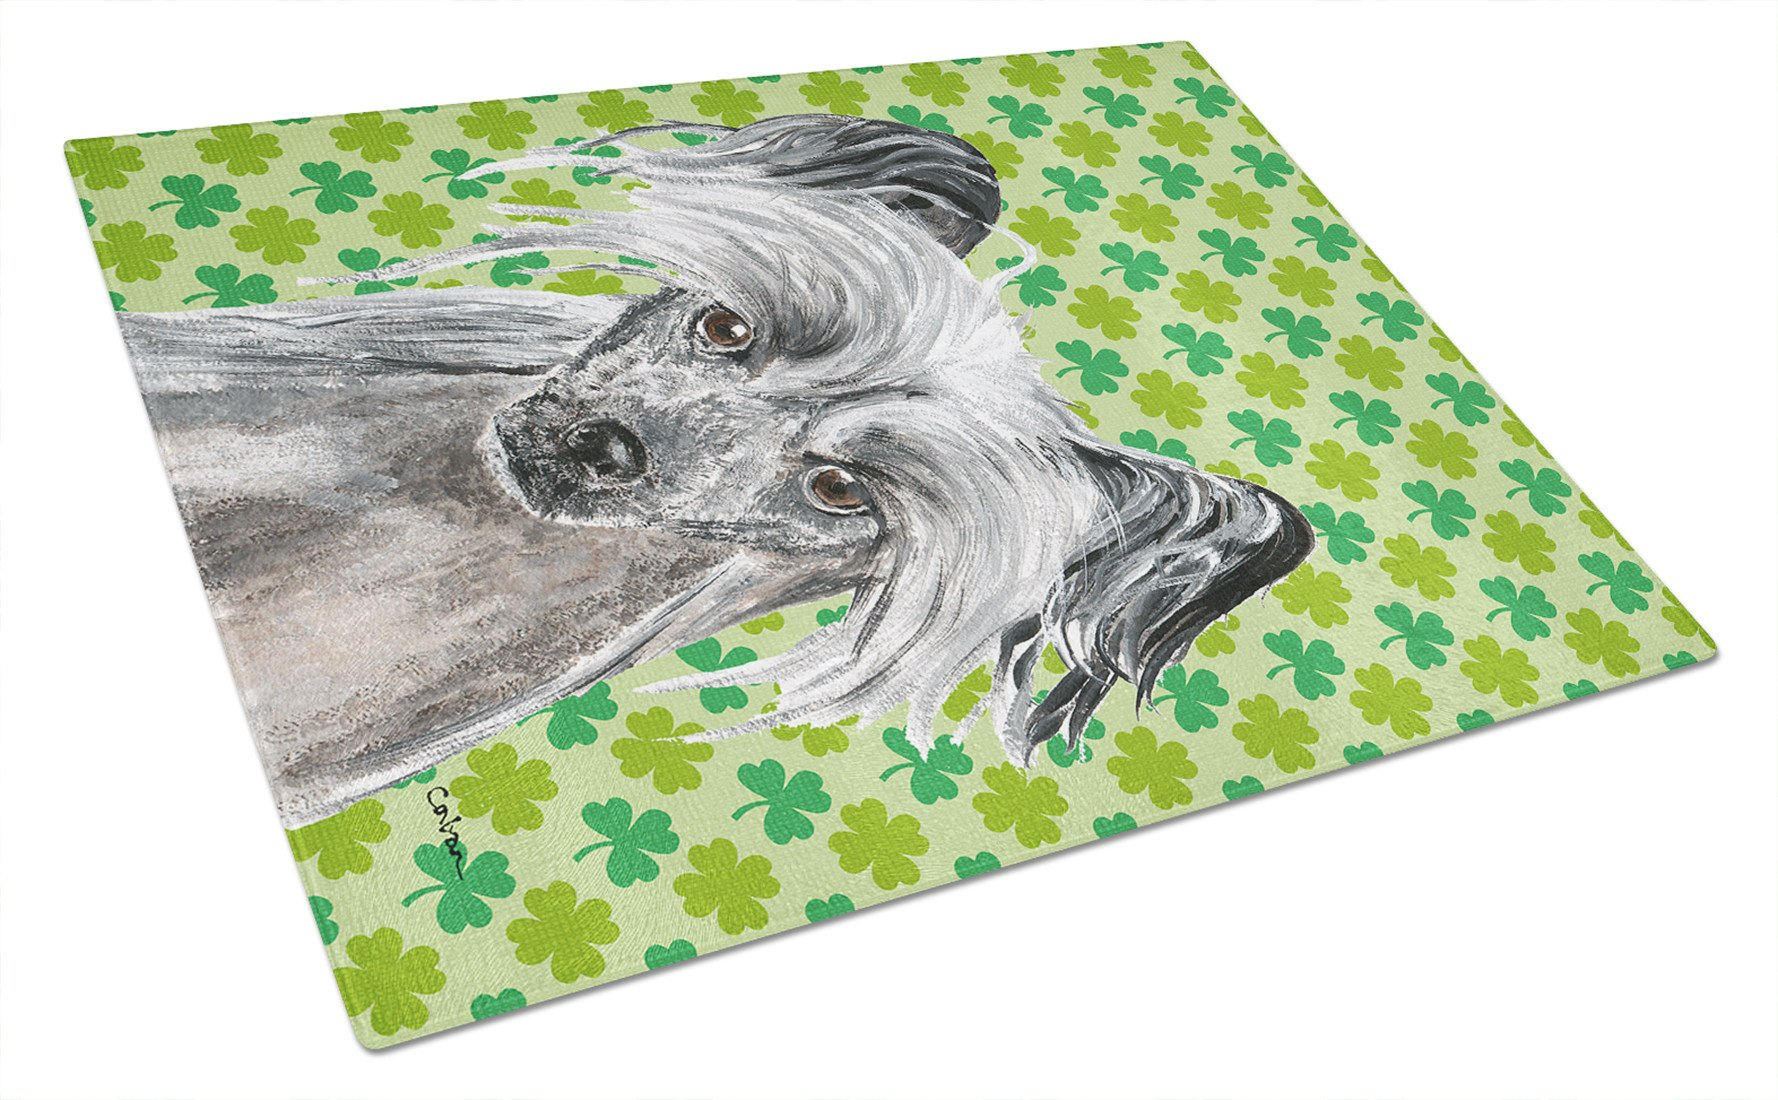 Chinese Crested St Patrick's Irish Glass Cutting Board Large by Caroline's Treasures